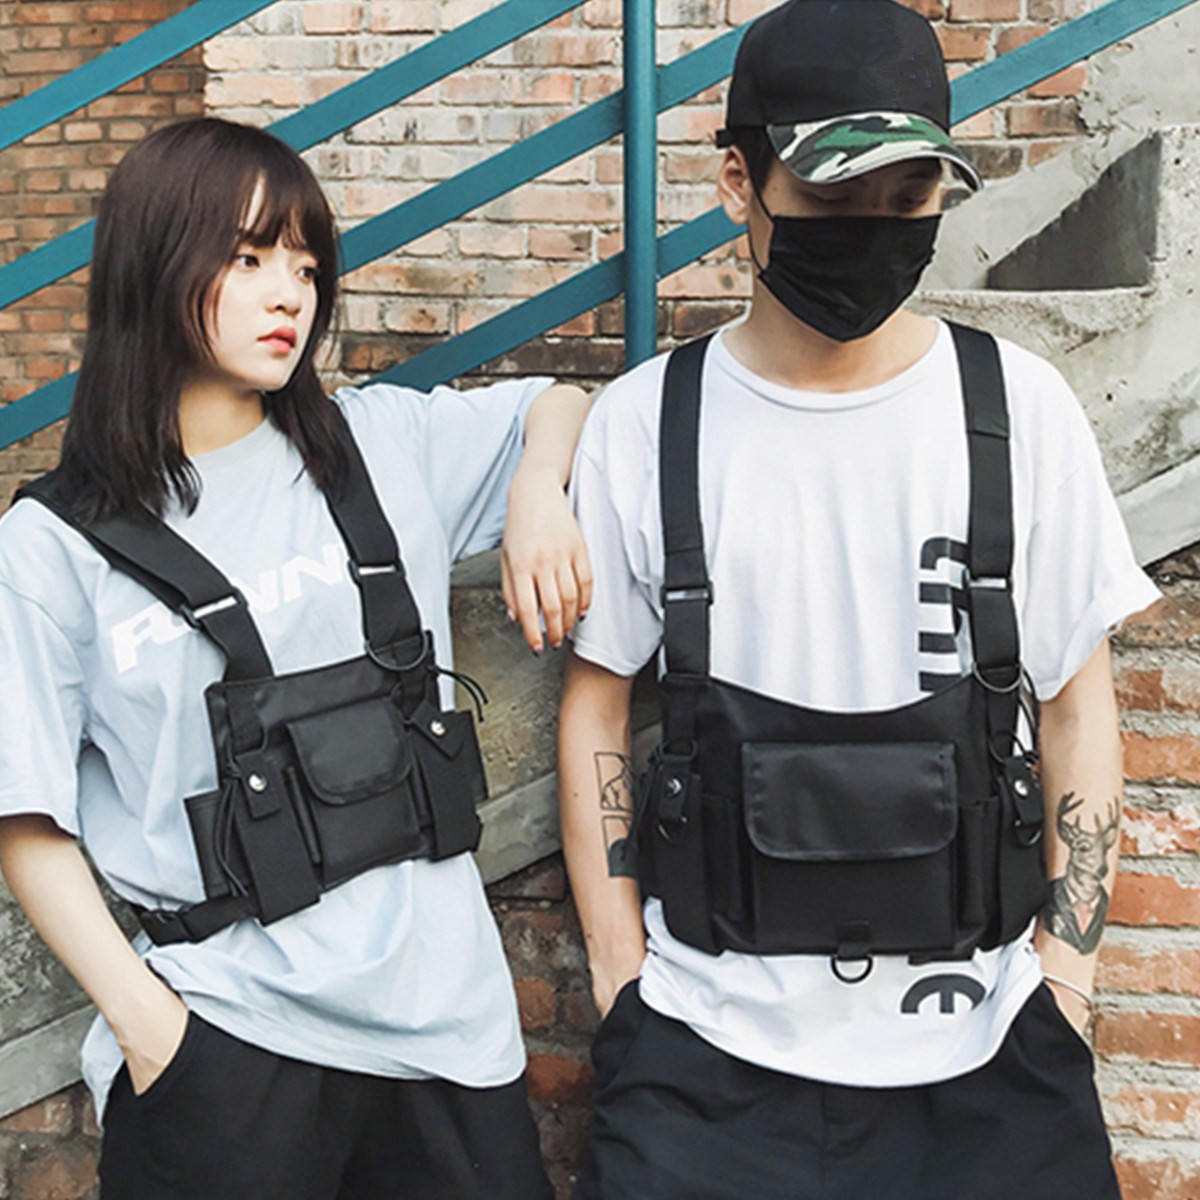 Fashion Oxford Chest Rig Bag Black Vest Hip Hop Streetwear Functional Waterproof Tactical Harness Chest Rig Waist Pack Chest Bag